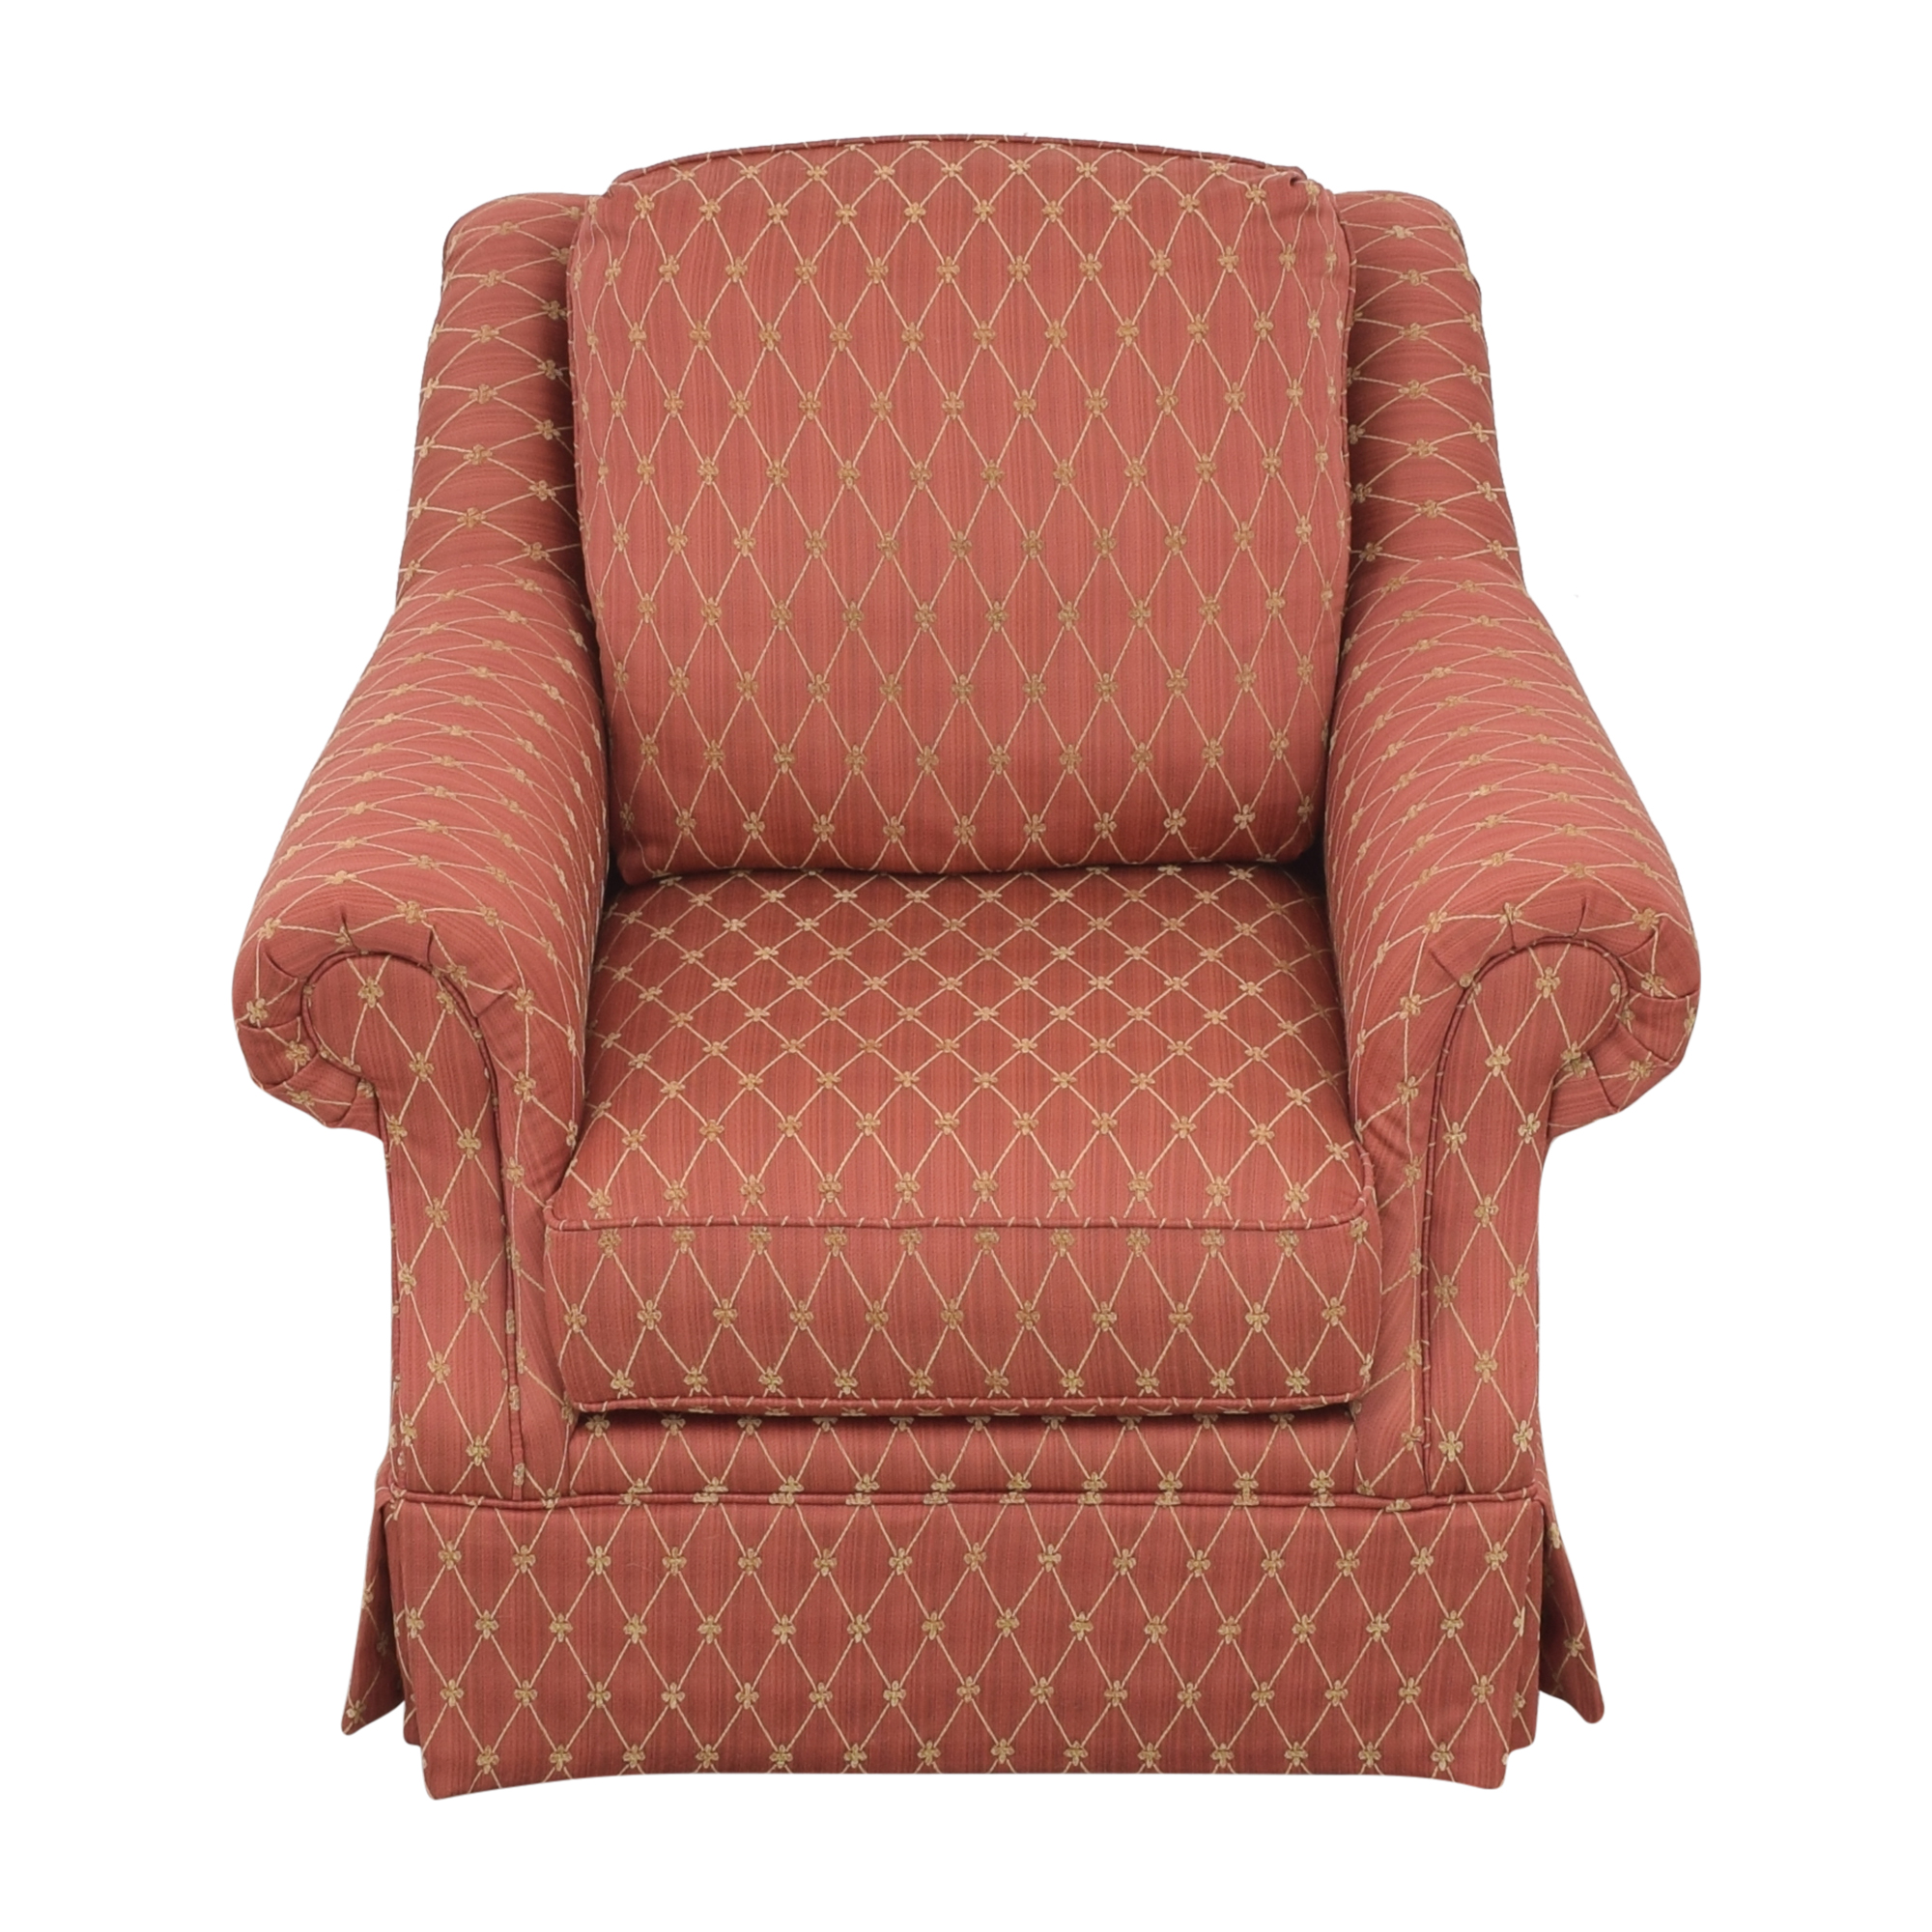 Clayton Marcus Clayton Marcus Accent Chair Accent Chairs